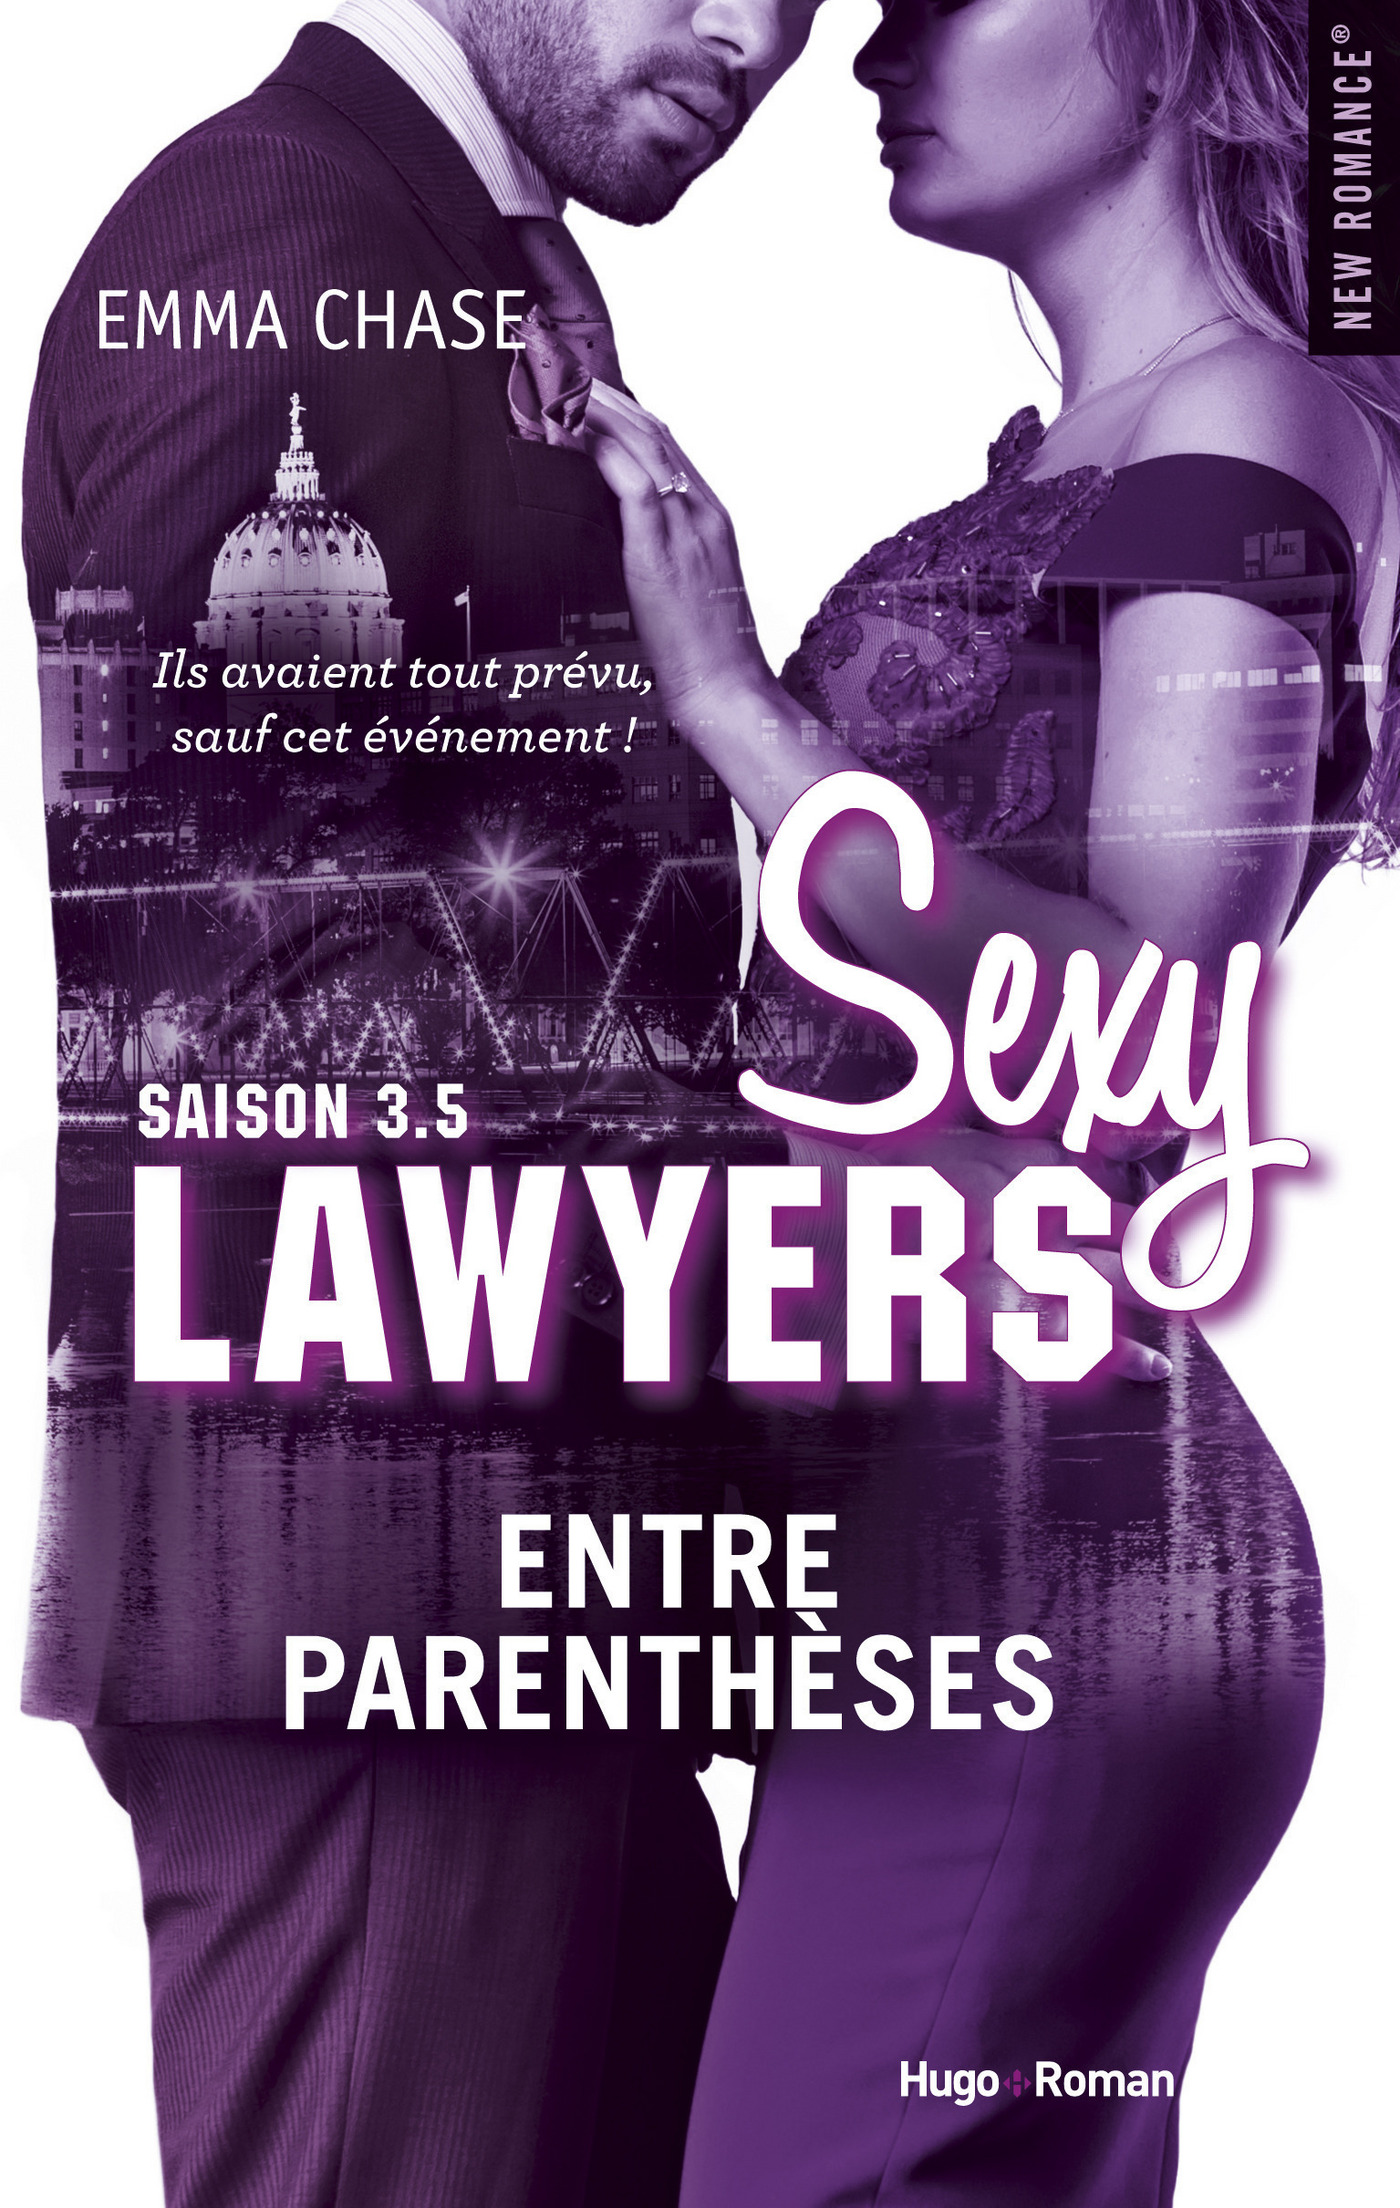 Sexy lawyers Saison 3.5 Entre parenthèses (ebook)